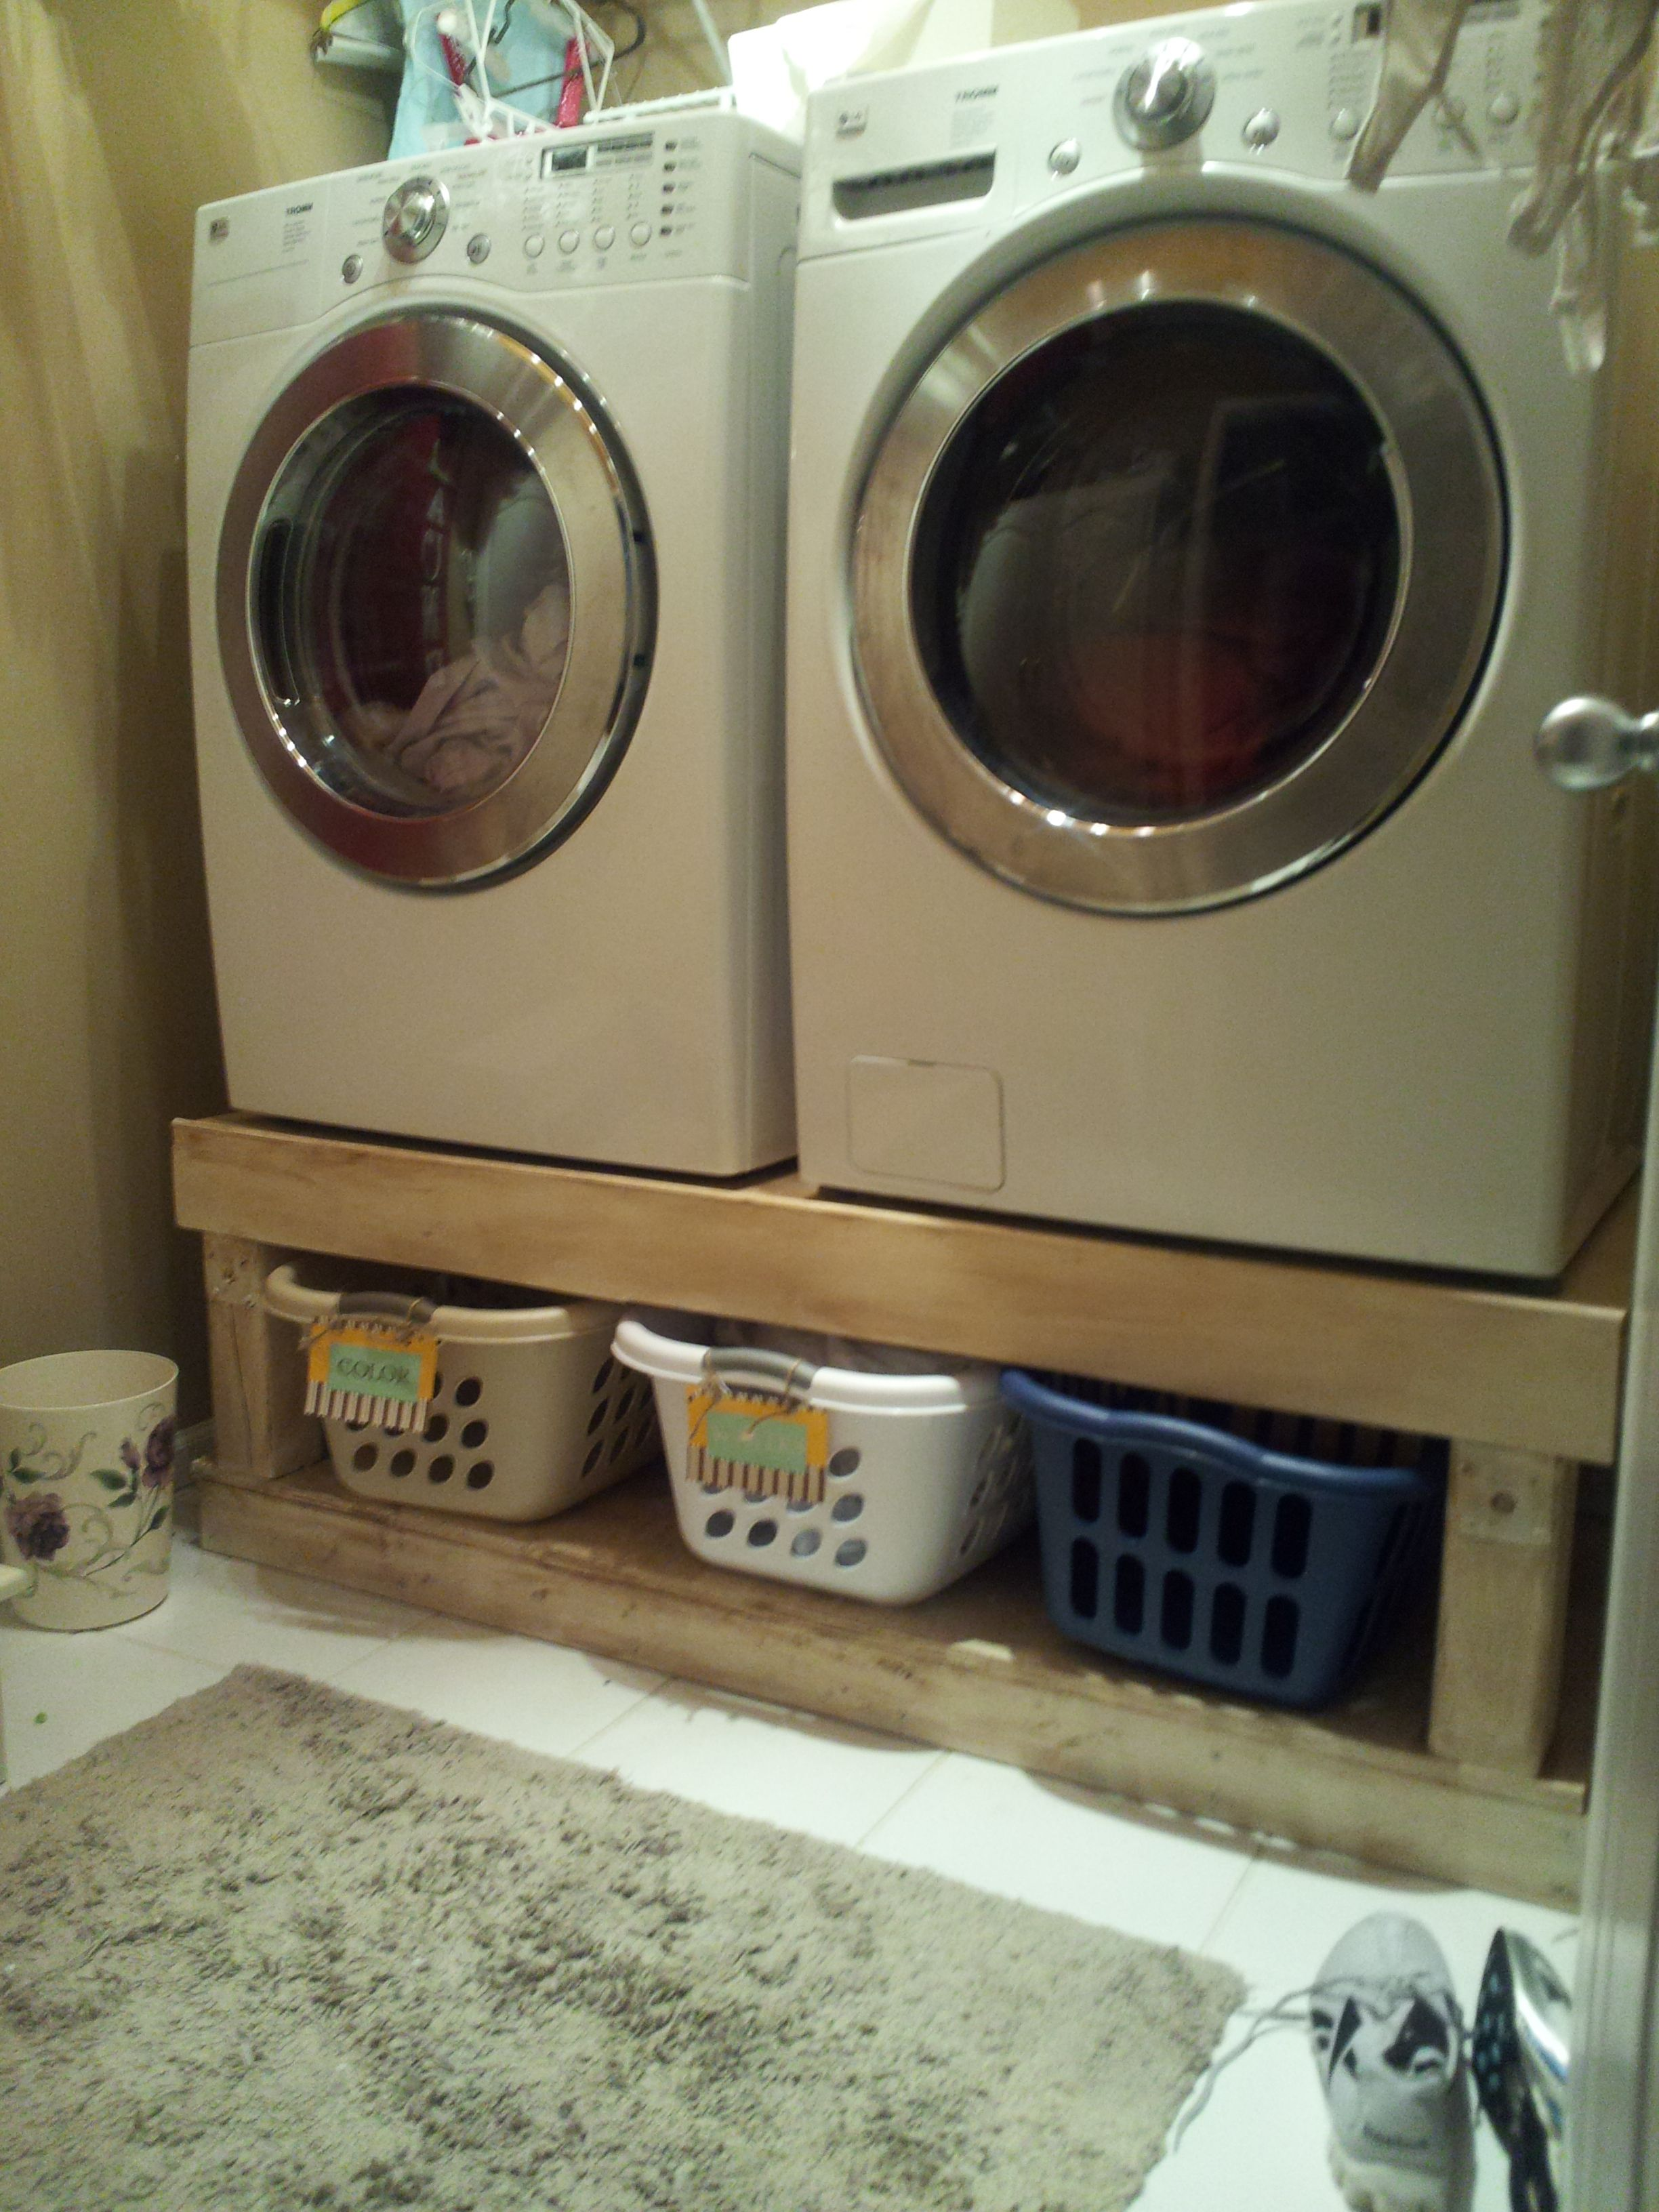 ada f dryer pedestal washer sets compliant and